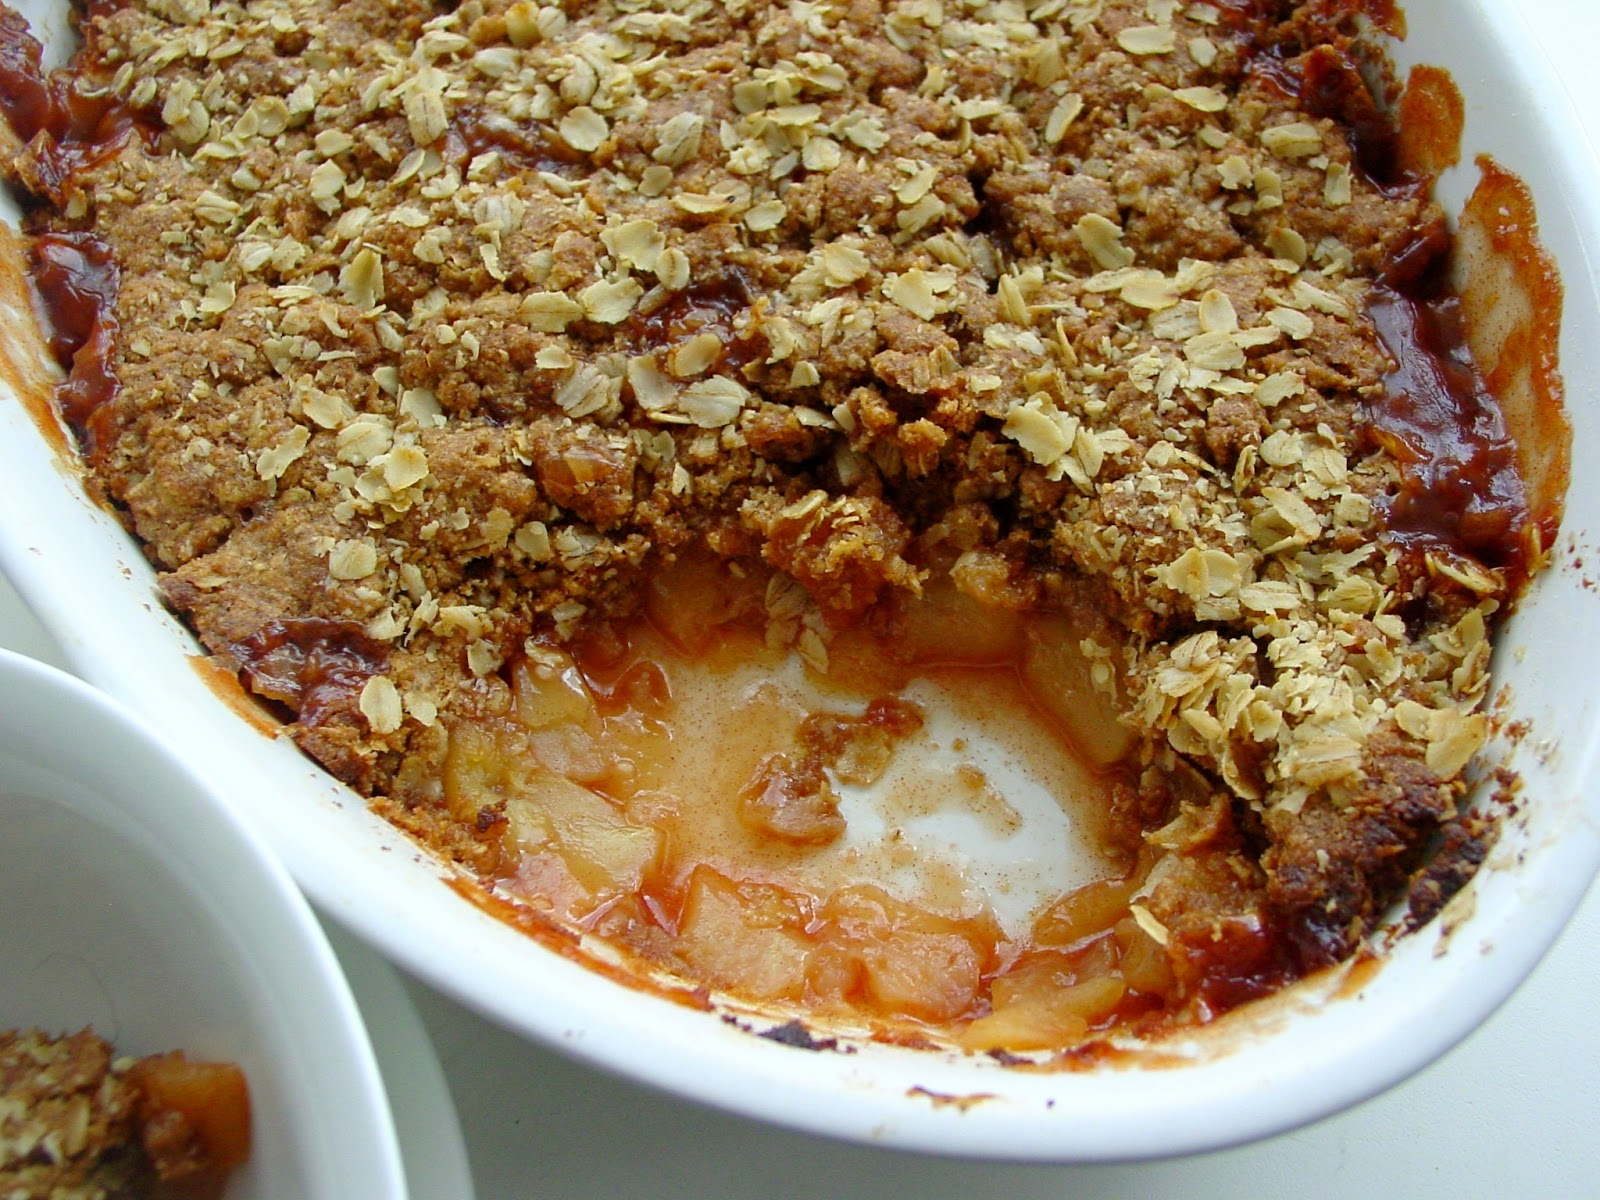 http://sugarandtwocents.blogspot.co.uk/2014/03/gluten-free-apple-crumble.html